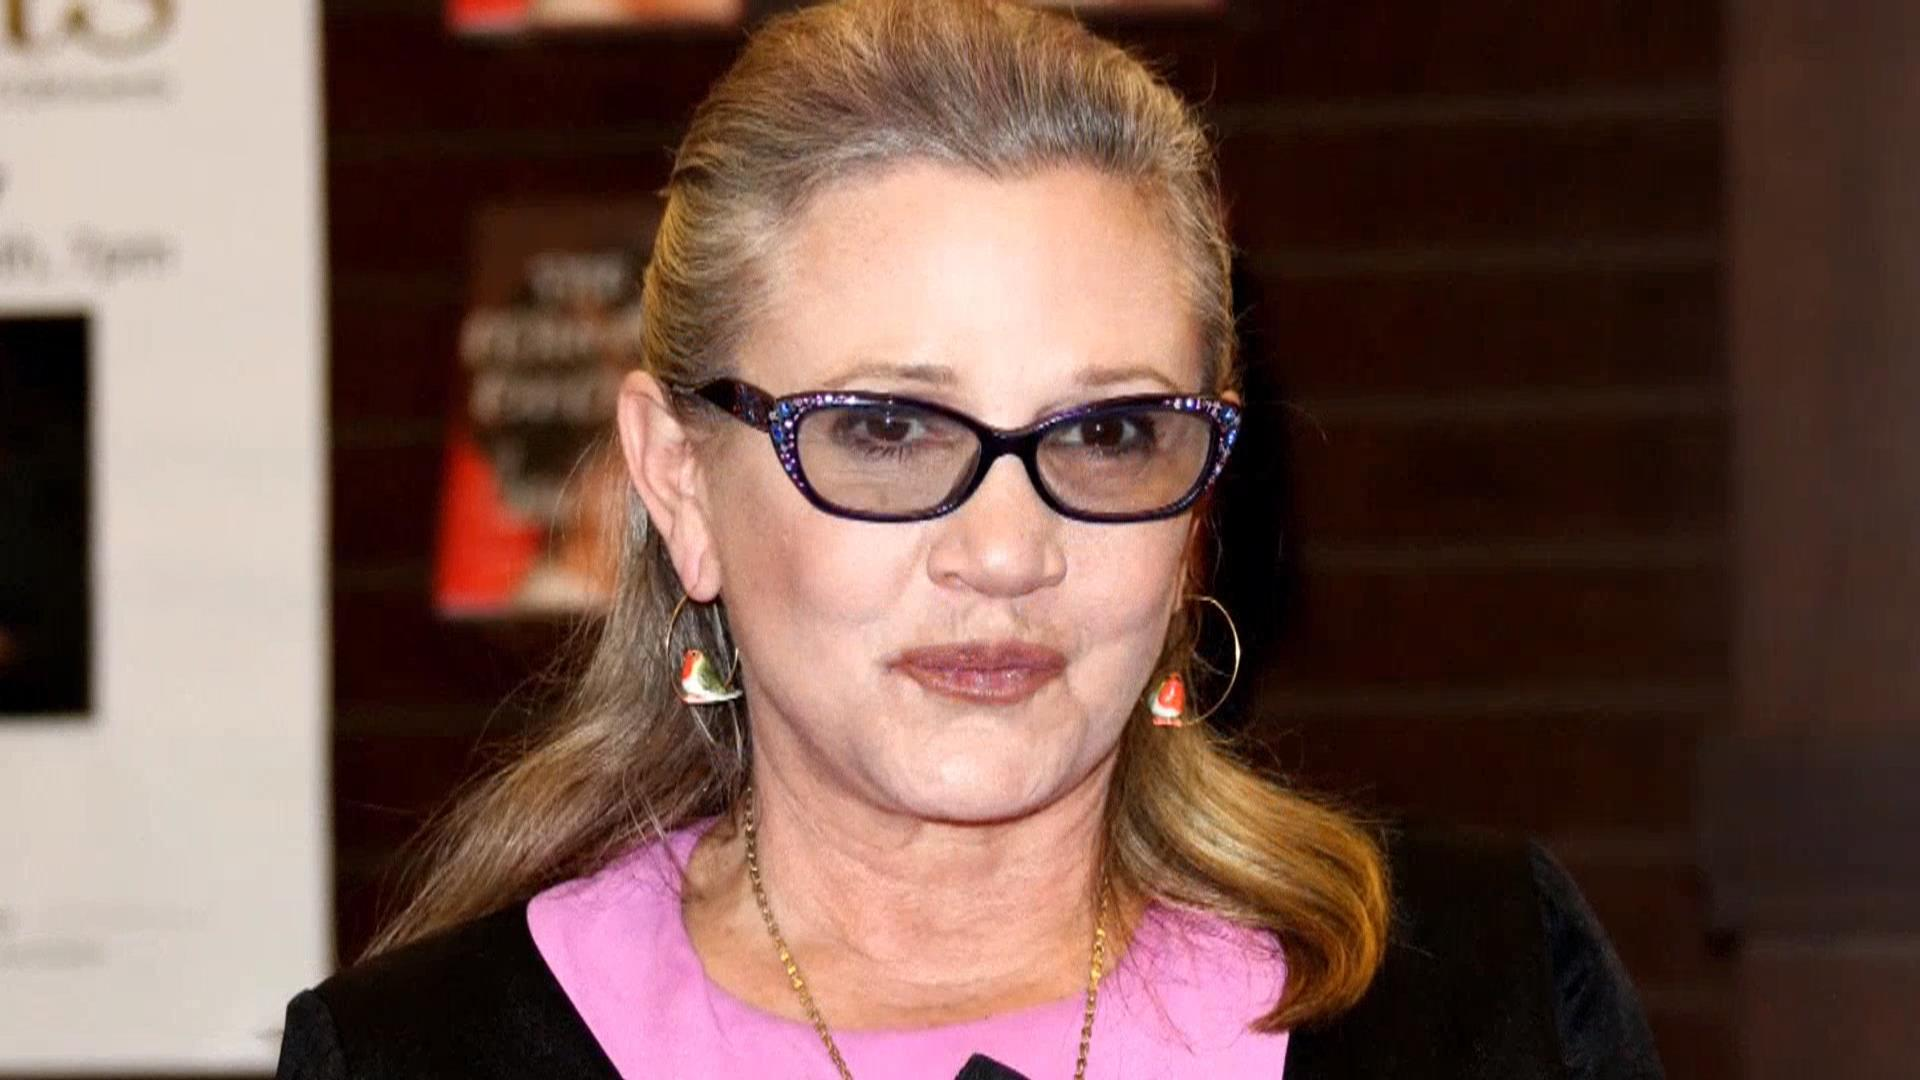 'star Wars' Actress Carrie Fisher Dies At 60 After Suffering Heart Attack   Nbc News